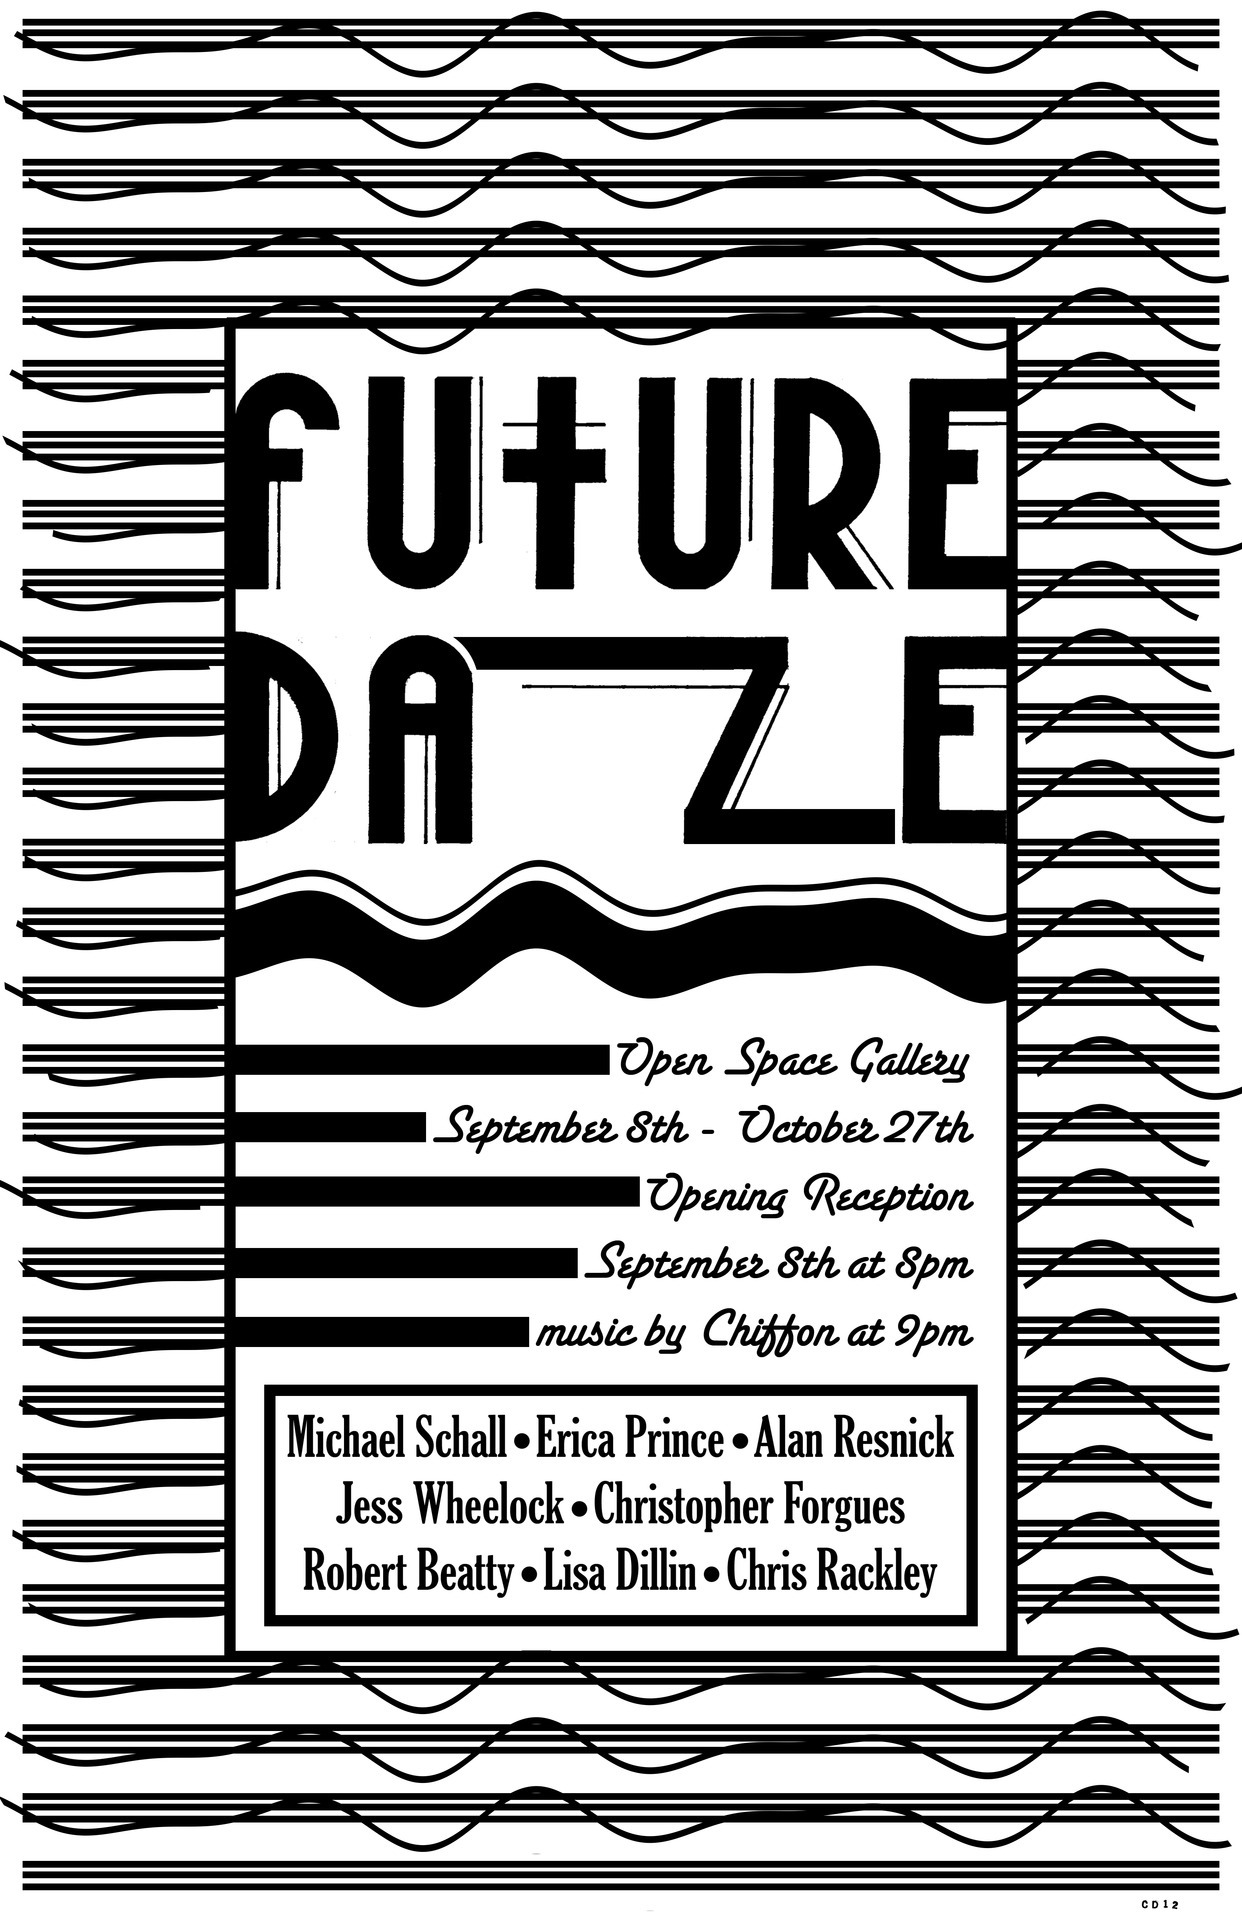 lifeisgoodtshirt:  openspacebaltimore:  Future Daze A new group curated show by Open Space GallerySeptember 8th - October 27th Michael SchallErica PrinceAlan ResnickJess WheelockChristopher ForguesRobert BeattyLisa DillinChris RackleyOpening reception on September 8th at 8pm with music by Chiffon at 9pm. DJ set by DJ Ferrari Jackson afterward.  C'mon out Baltimore!!!  Wish I could go to this !